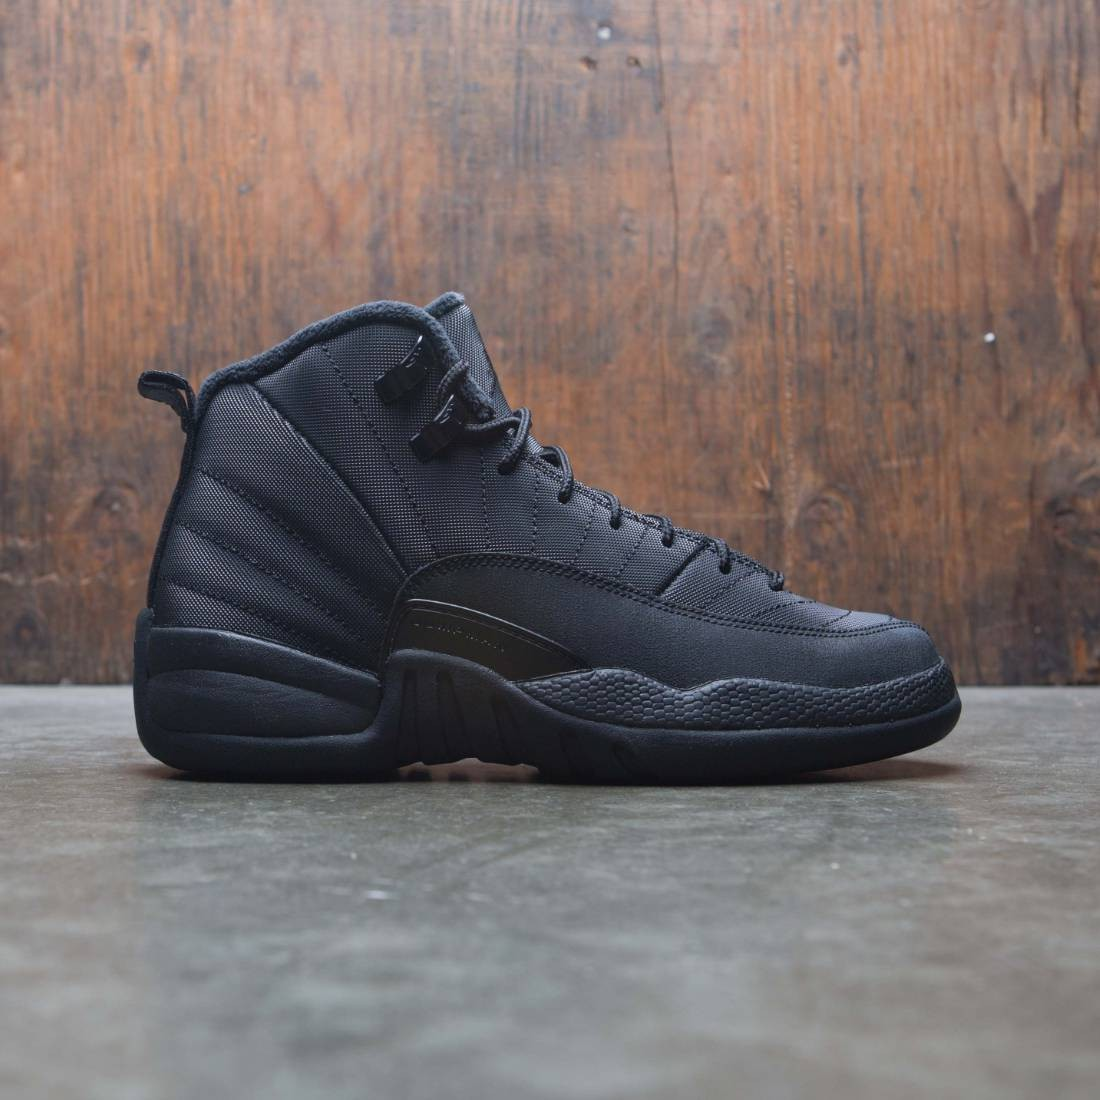 fe0aa798fffb04 jordan big kids air jordan 12 retro wntr gs black black anthracite